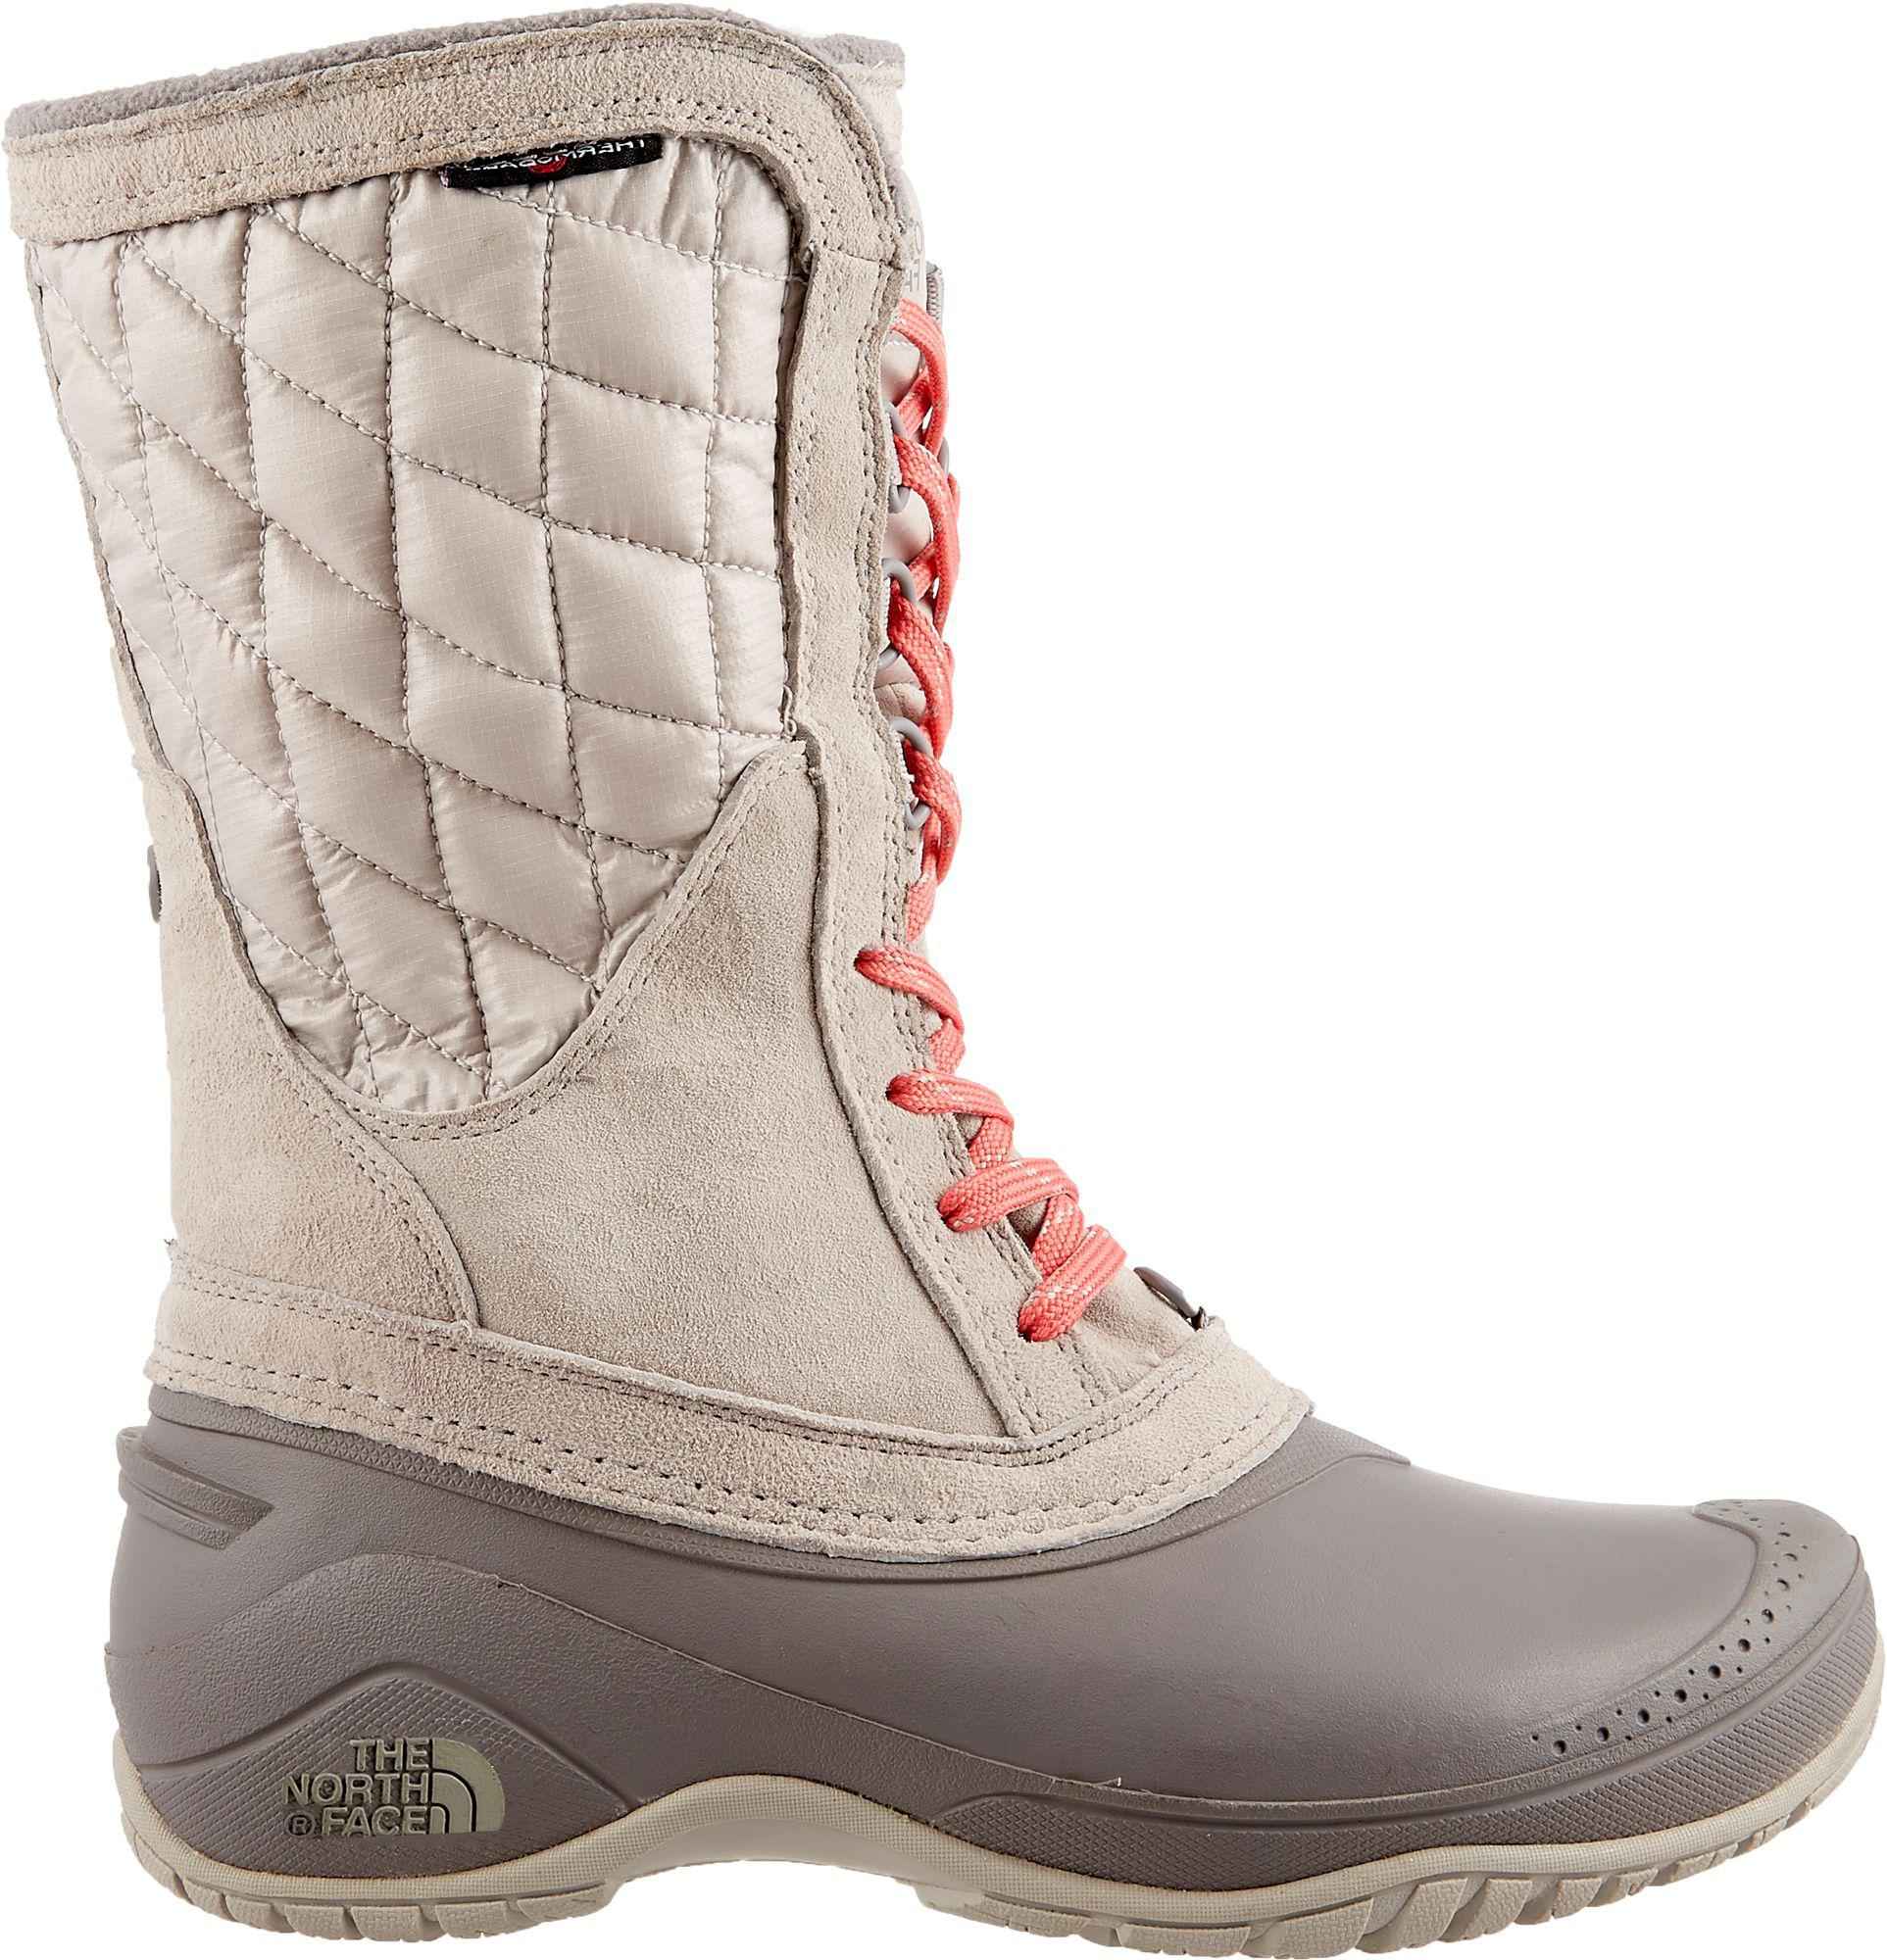 64a148fee The North Face Gray Thermoball Utility Mid Insulated Waterproof Winter Boots